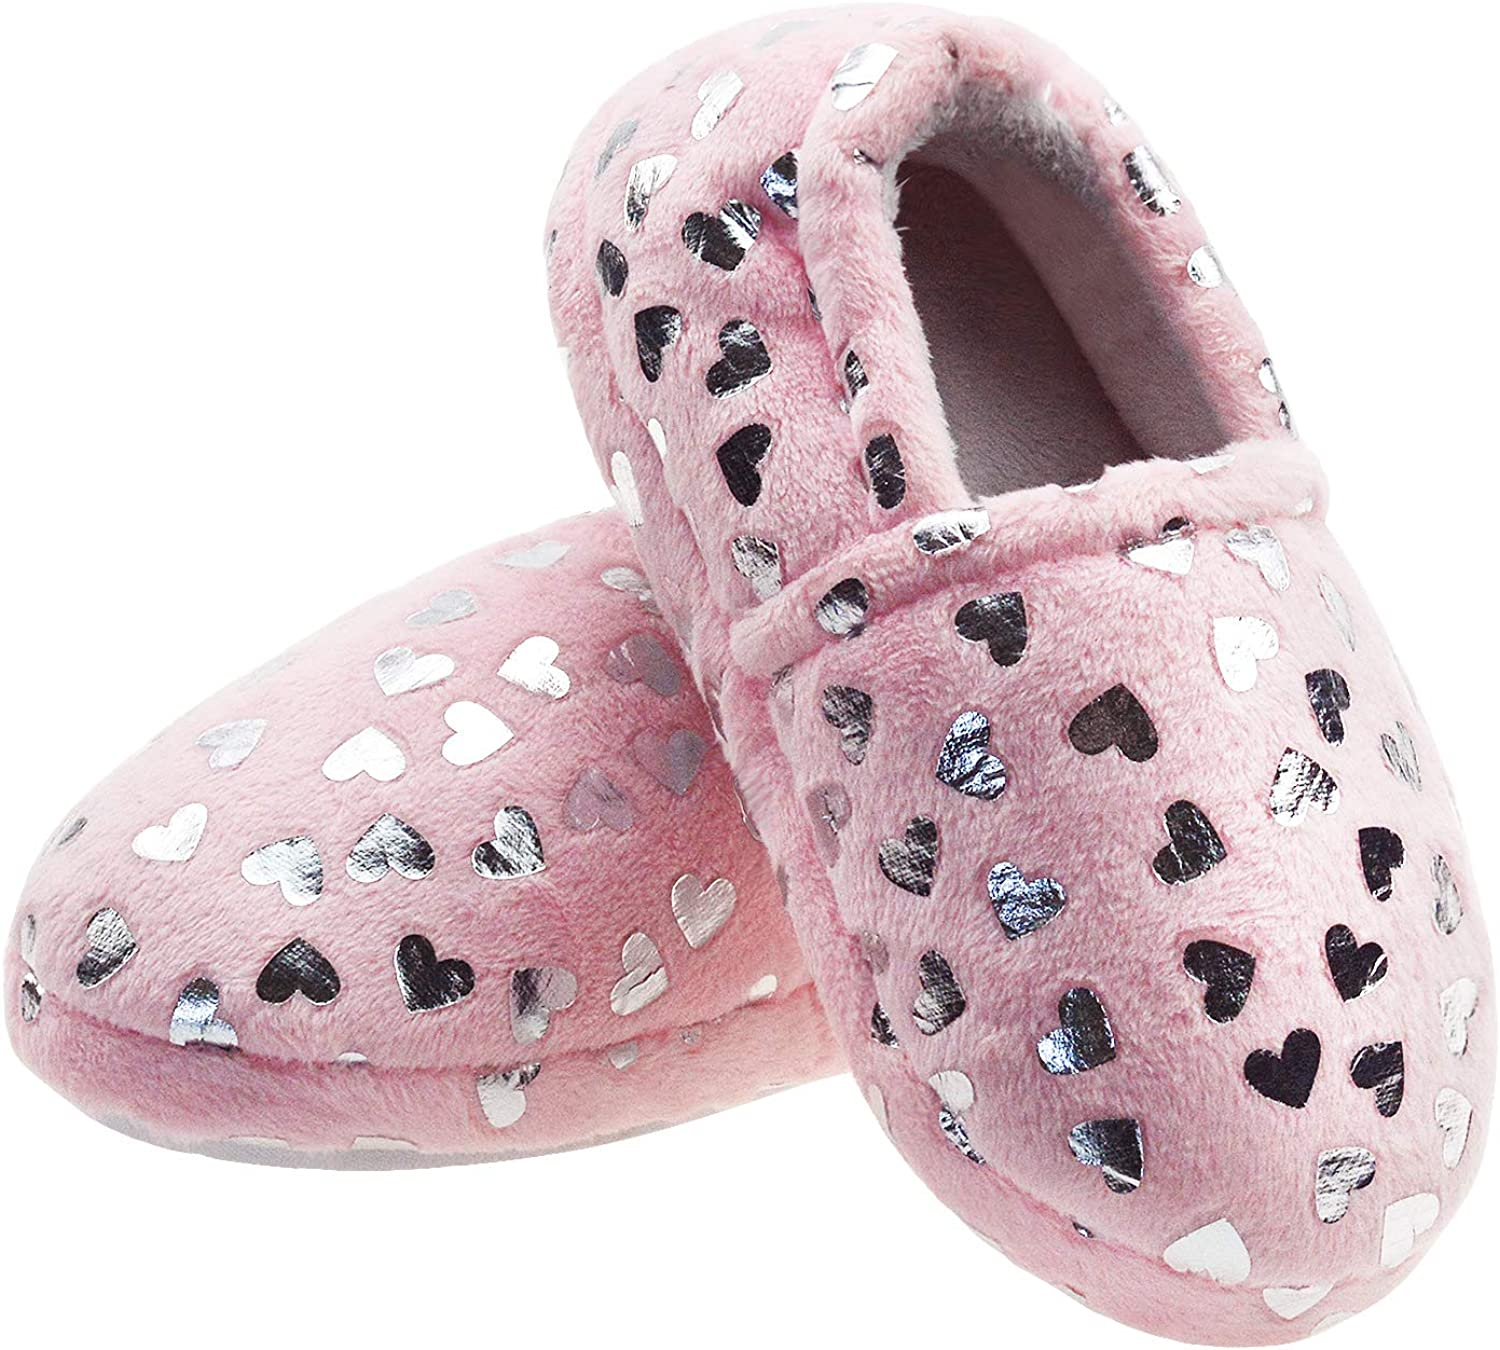 LULEX Girls Cute Fleece Heart Slippers Warm Household Anti-Slip Indoor Home Slippers